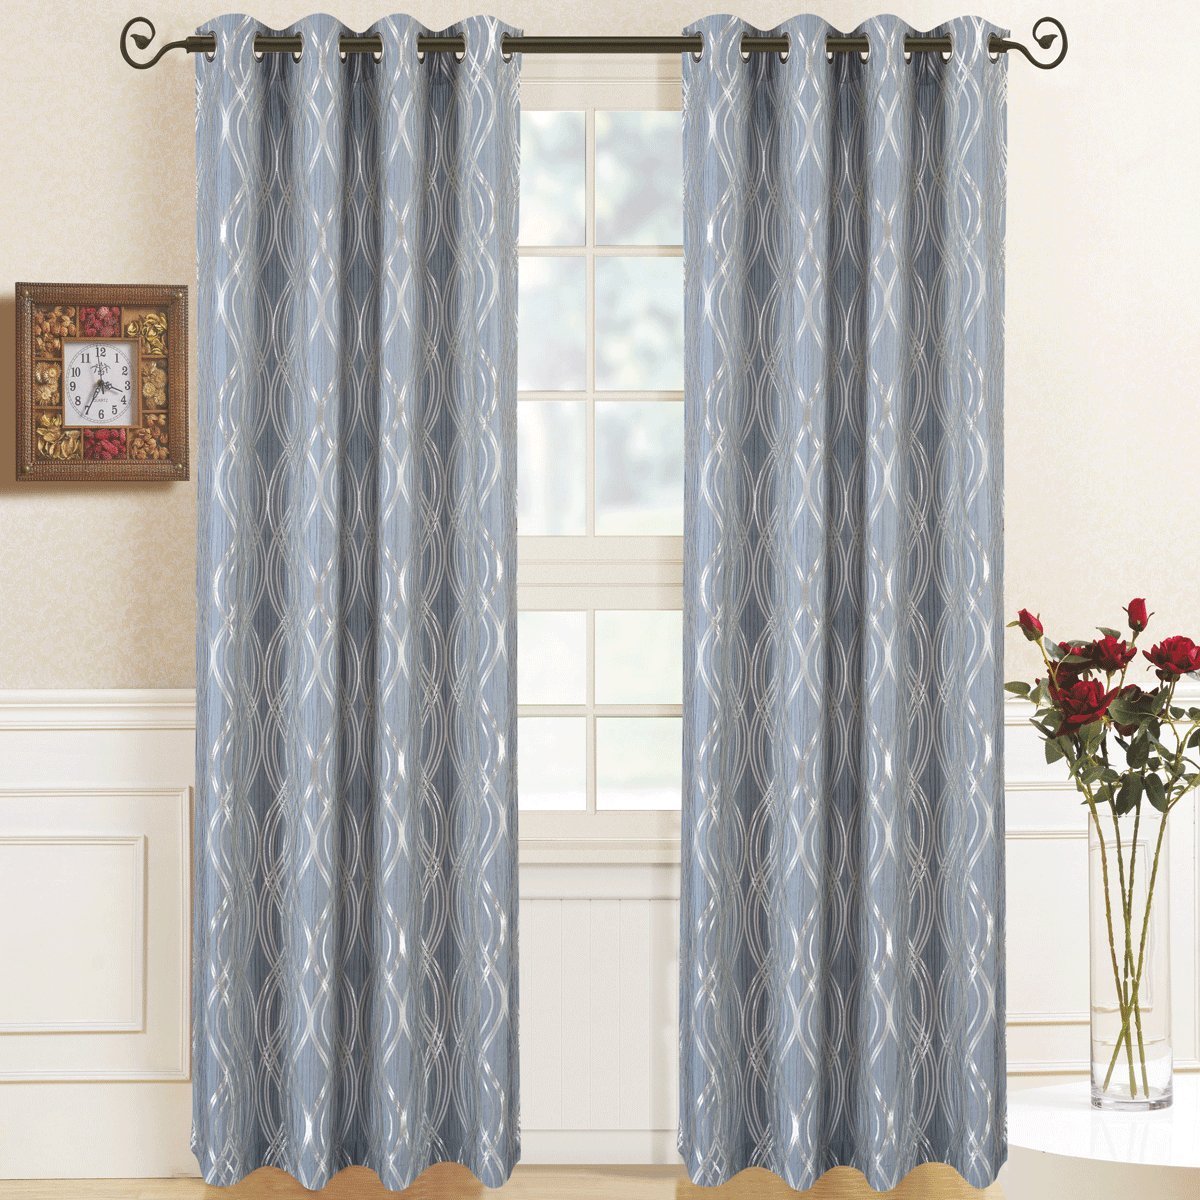 Regalia Blue Top Grommet Abstract Jacquard Textured Window Curtain Panel, Set of 2 Panels, 104x63 Inches Pair, by Royal Hotel